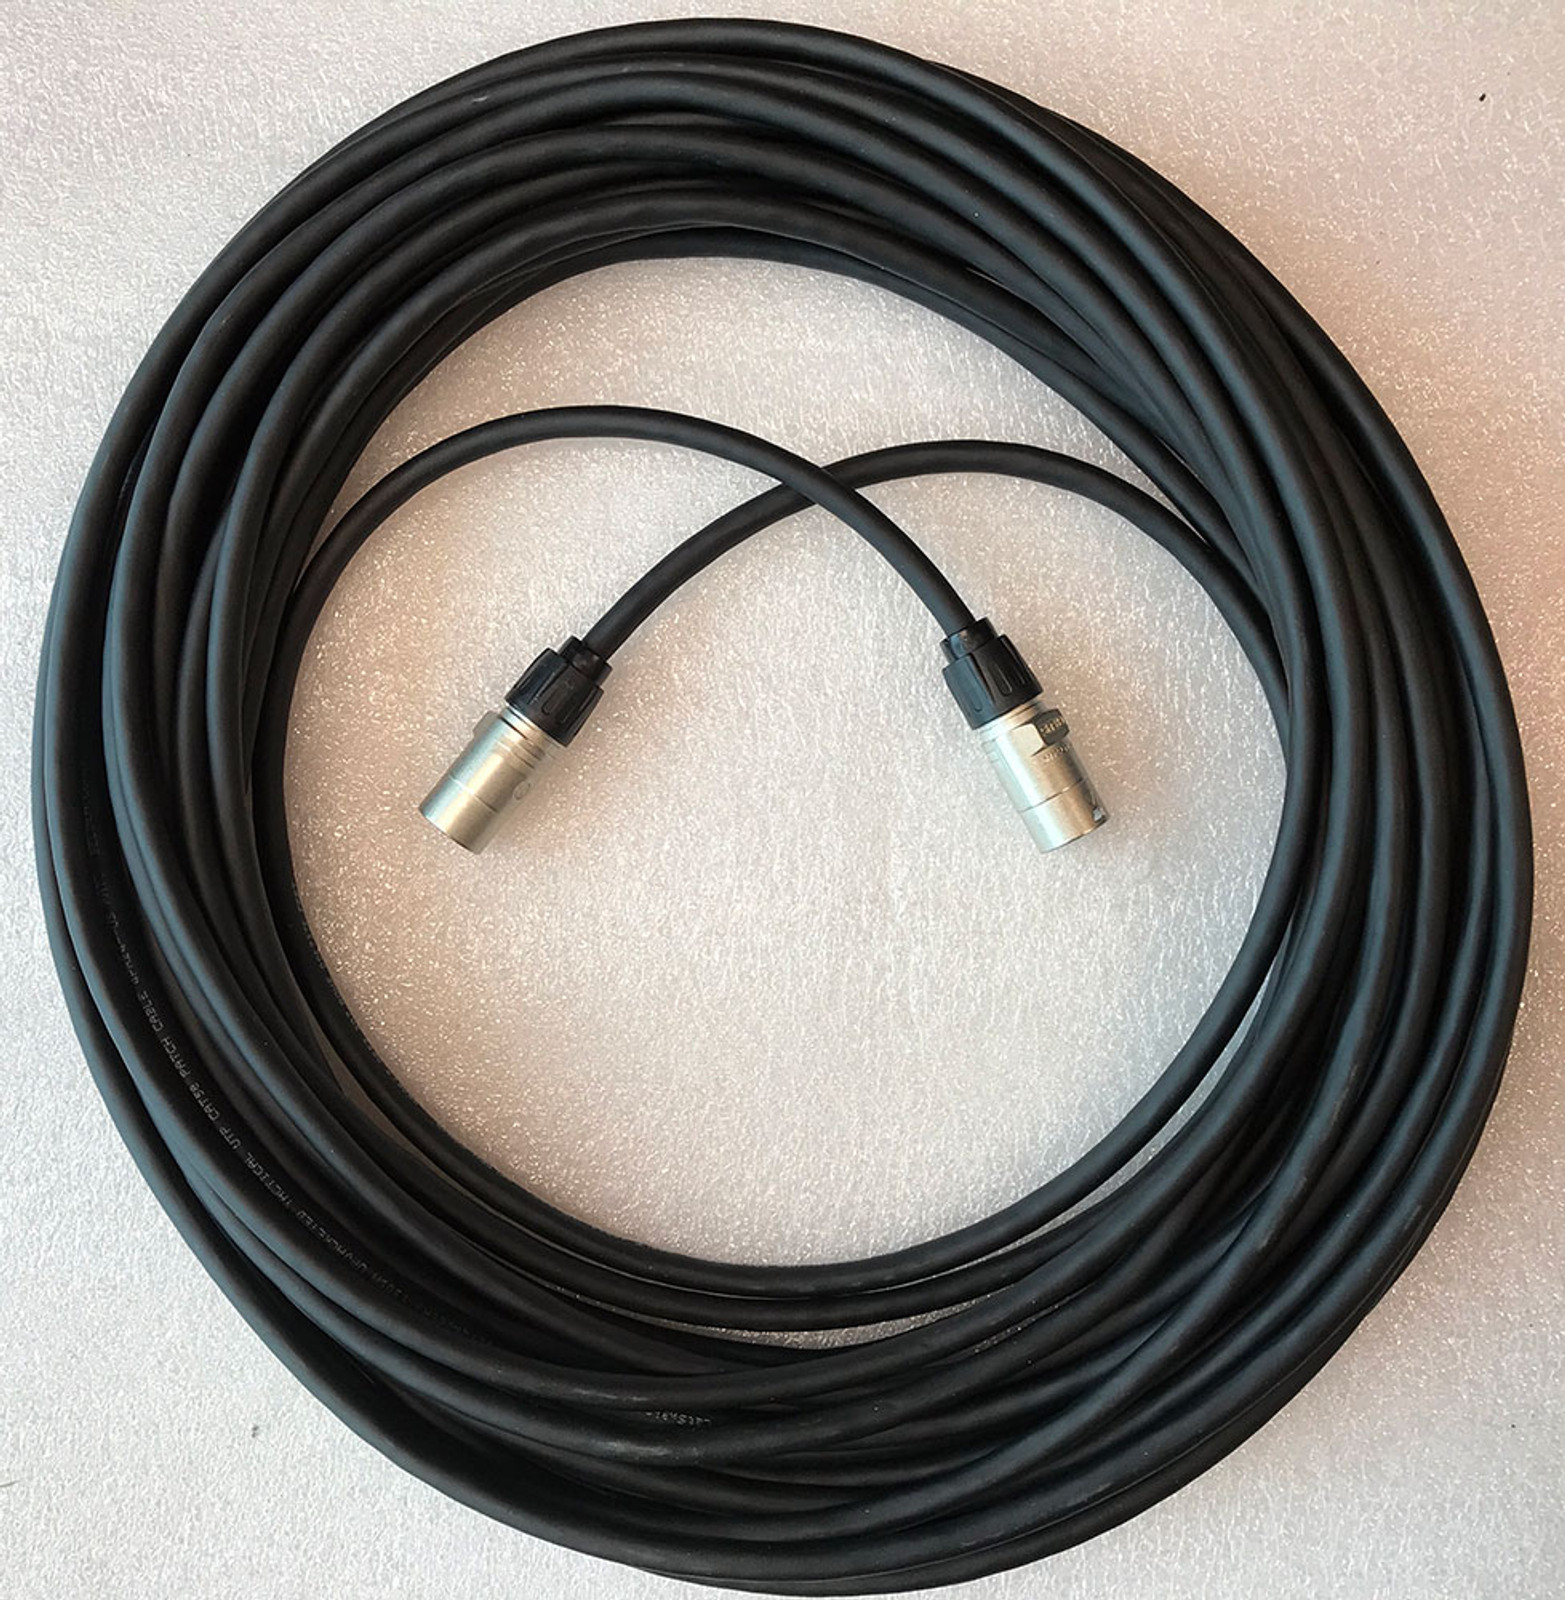 Belden 60 metre premium unshielded digital snake Cat5E cable. Neutrik ethercon connectors